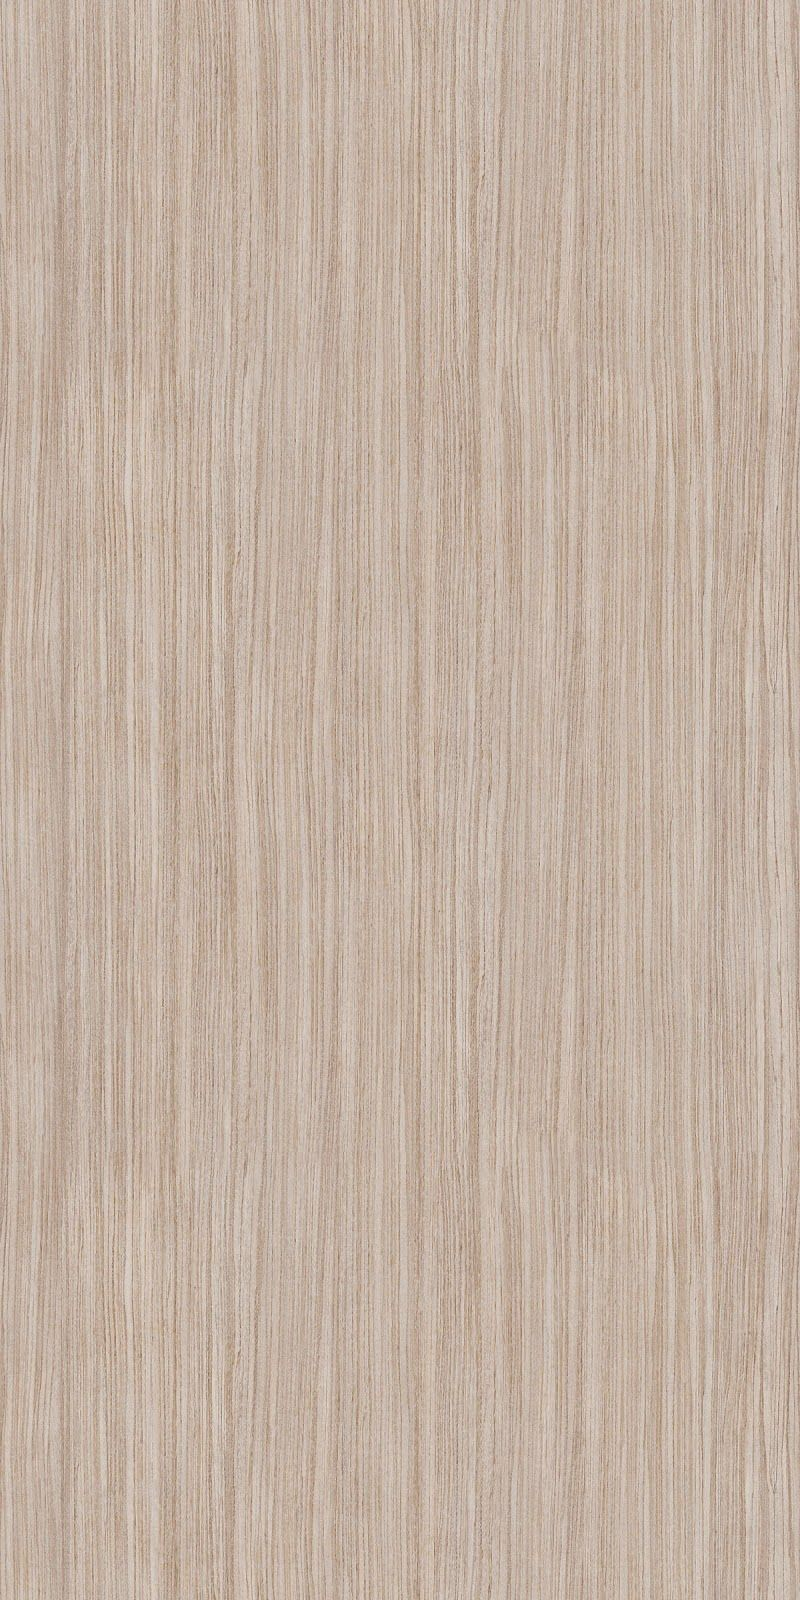 Seamless fine wood laminate texture maps texturise for Laminated wood